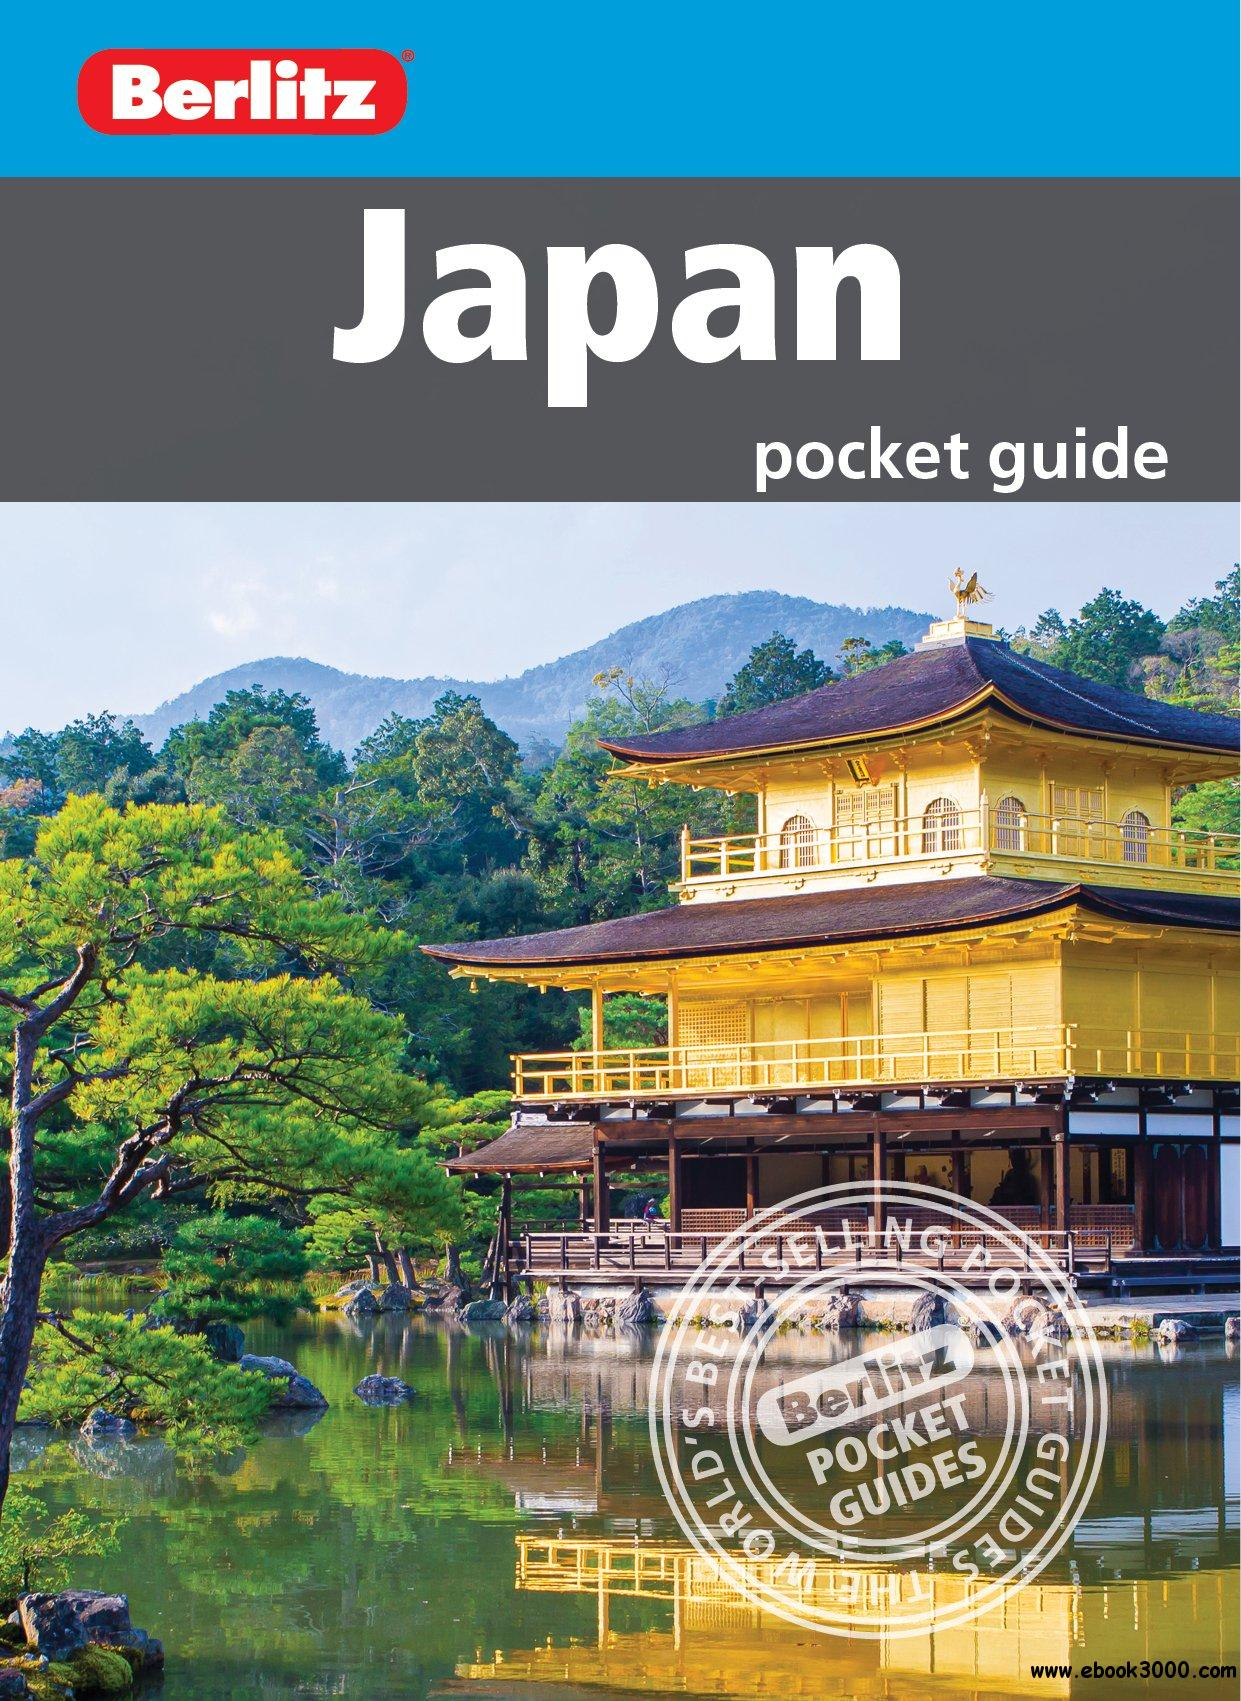 Berlitz Pocket Guide Japan